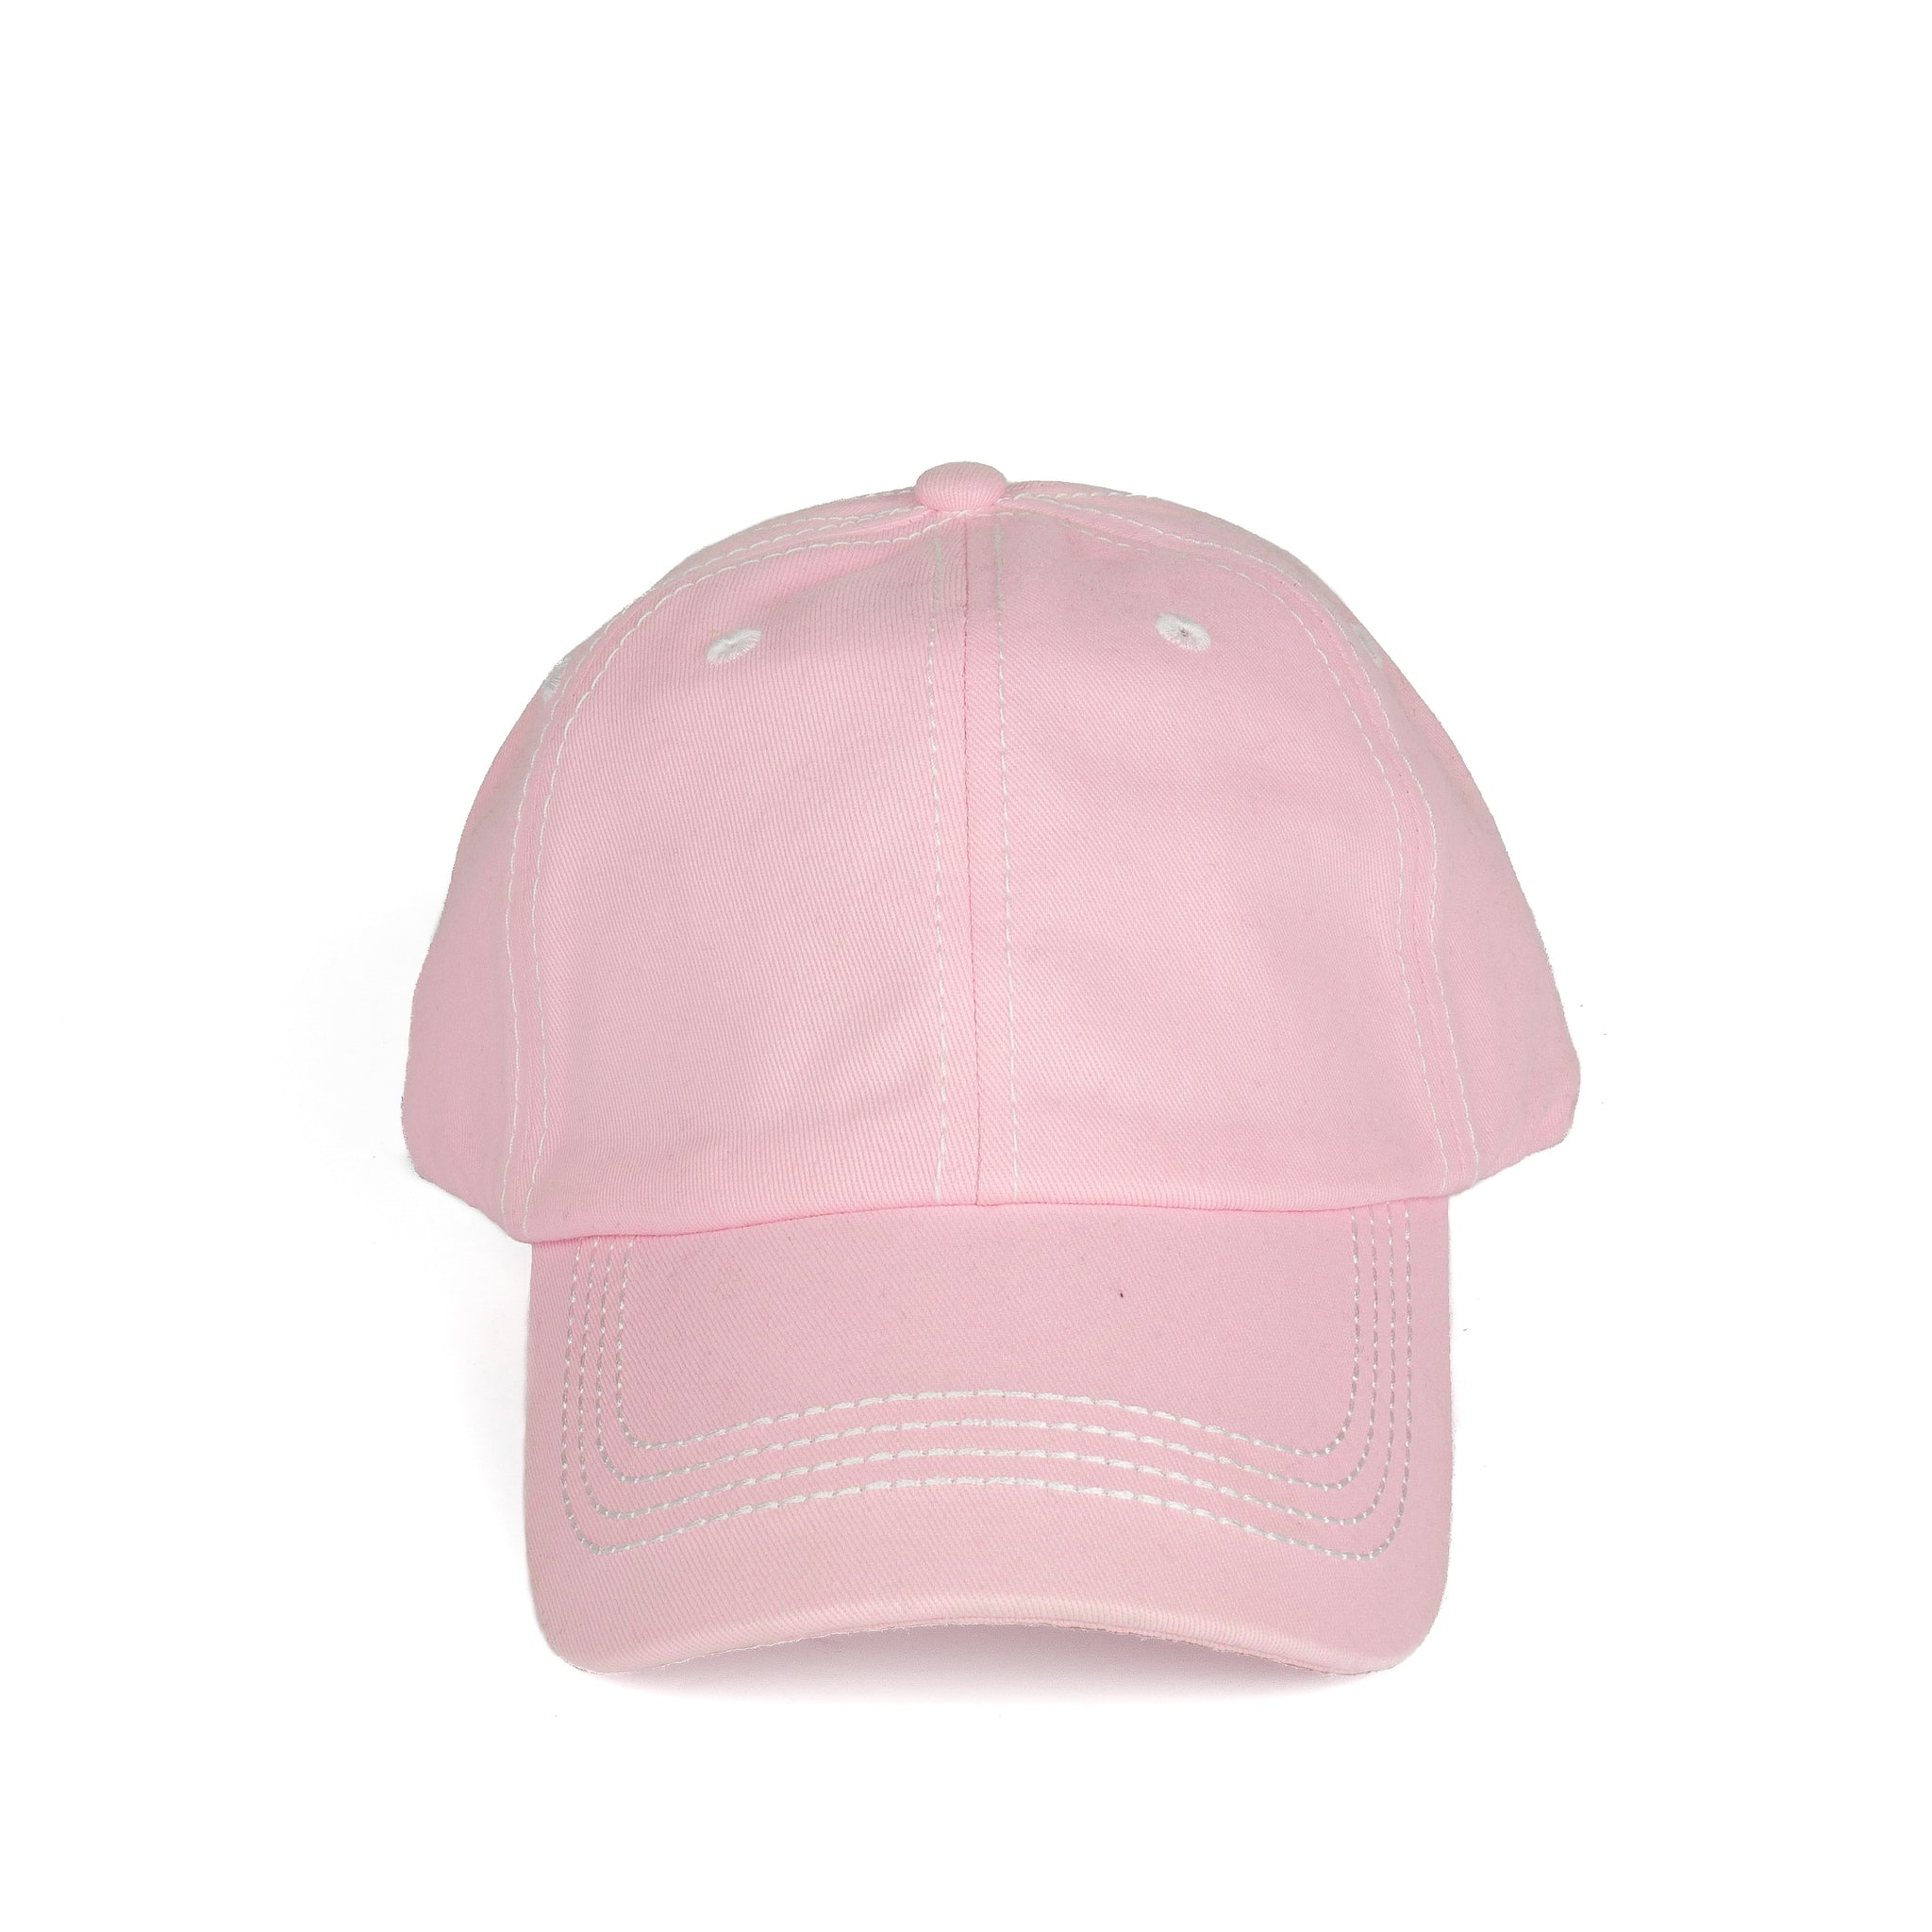 Stitch Dad Hat - Pink